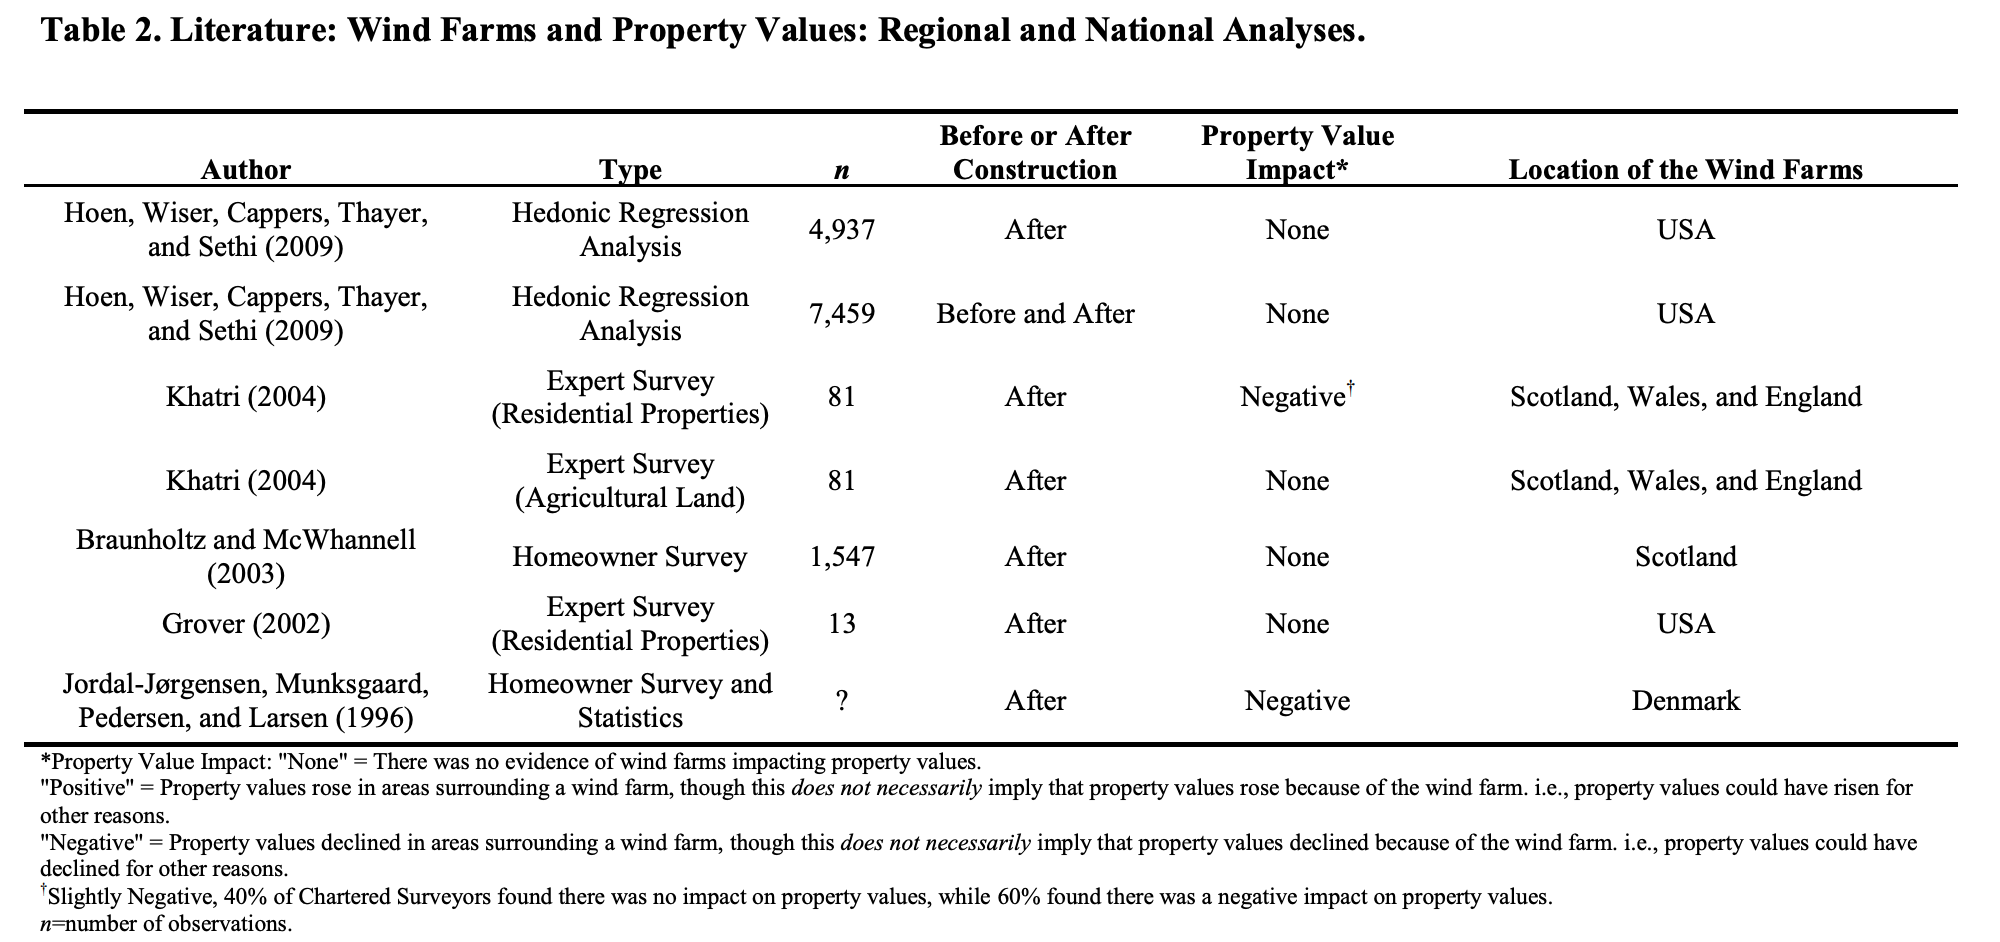 Table of literature review of property value studies